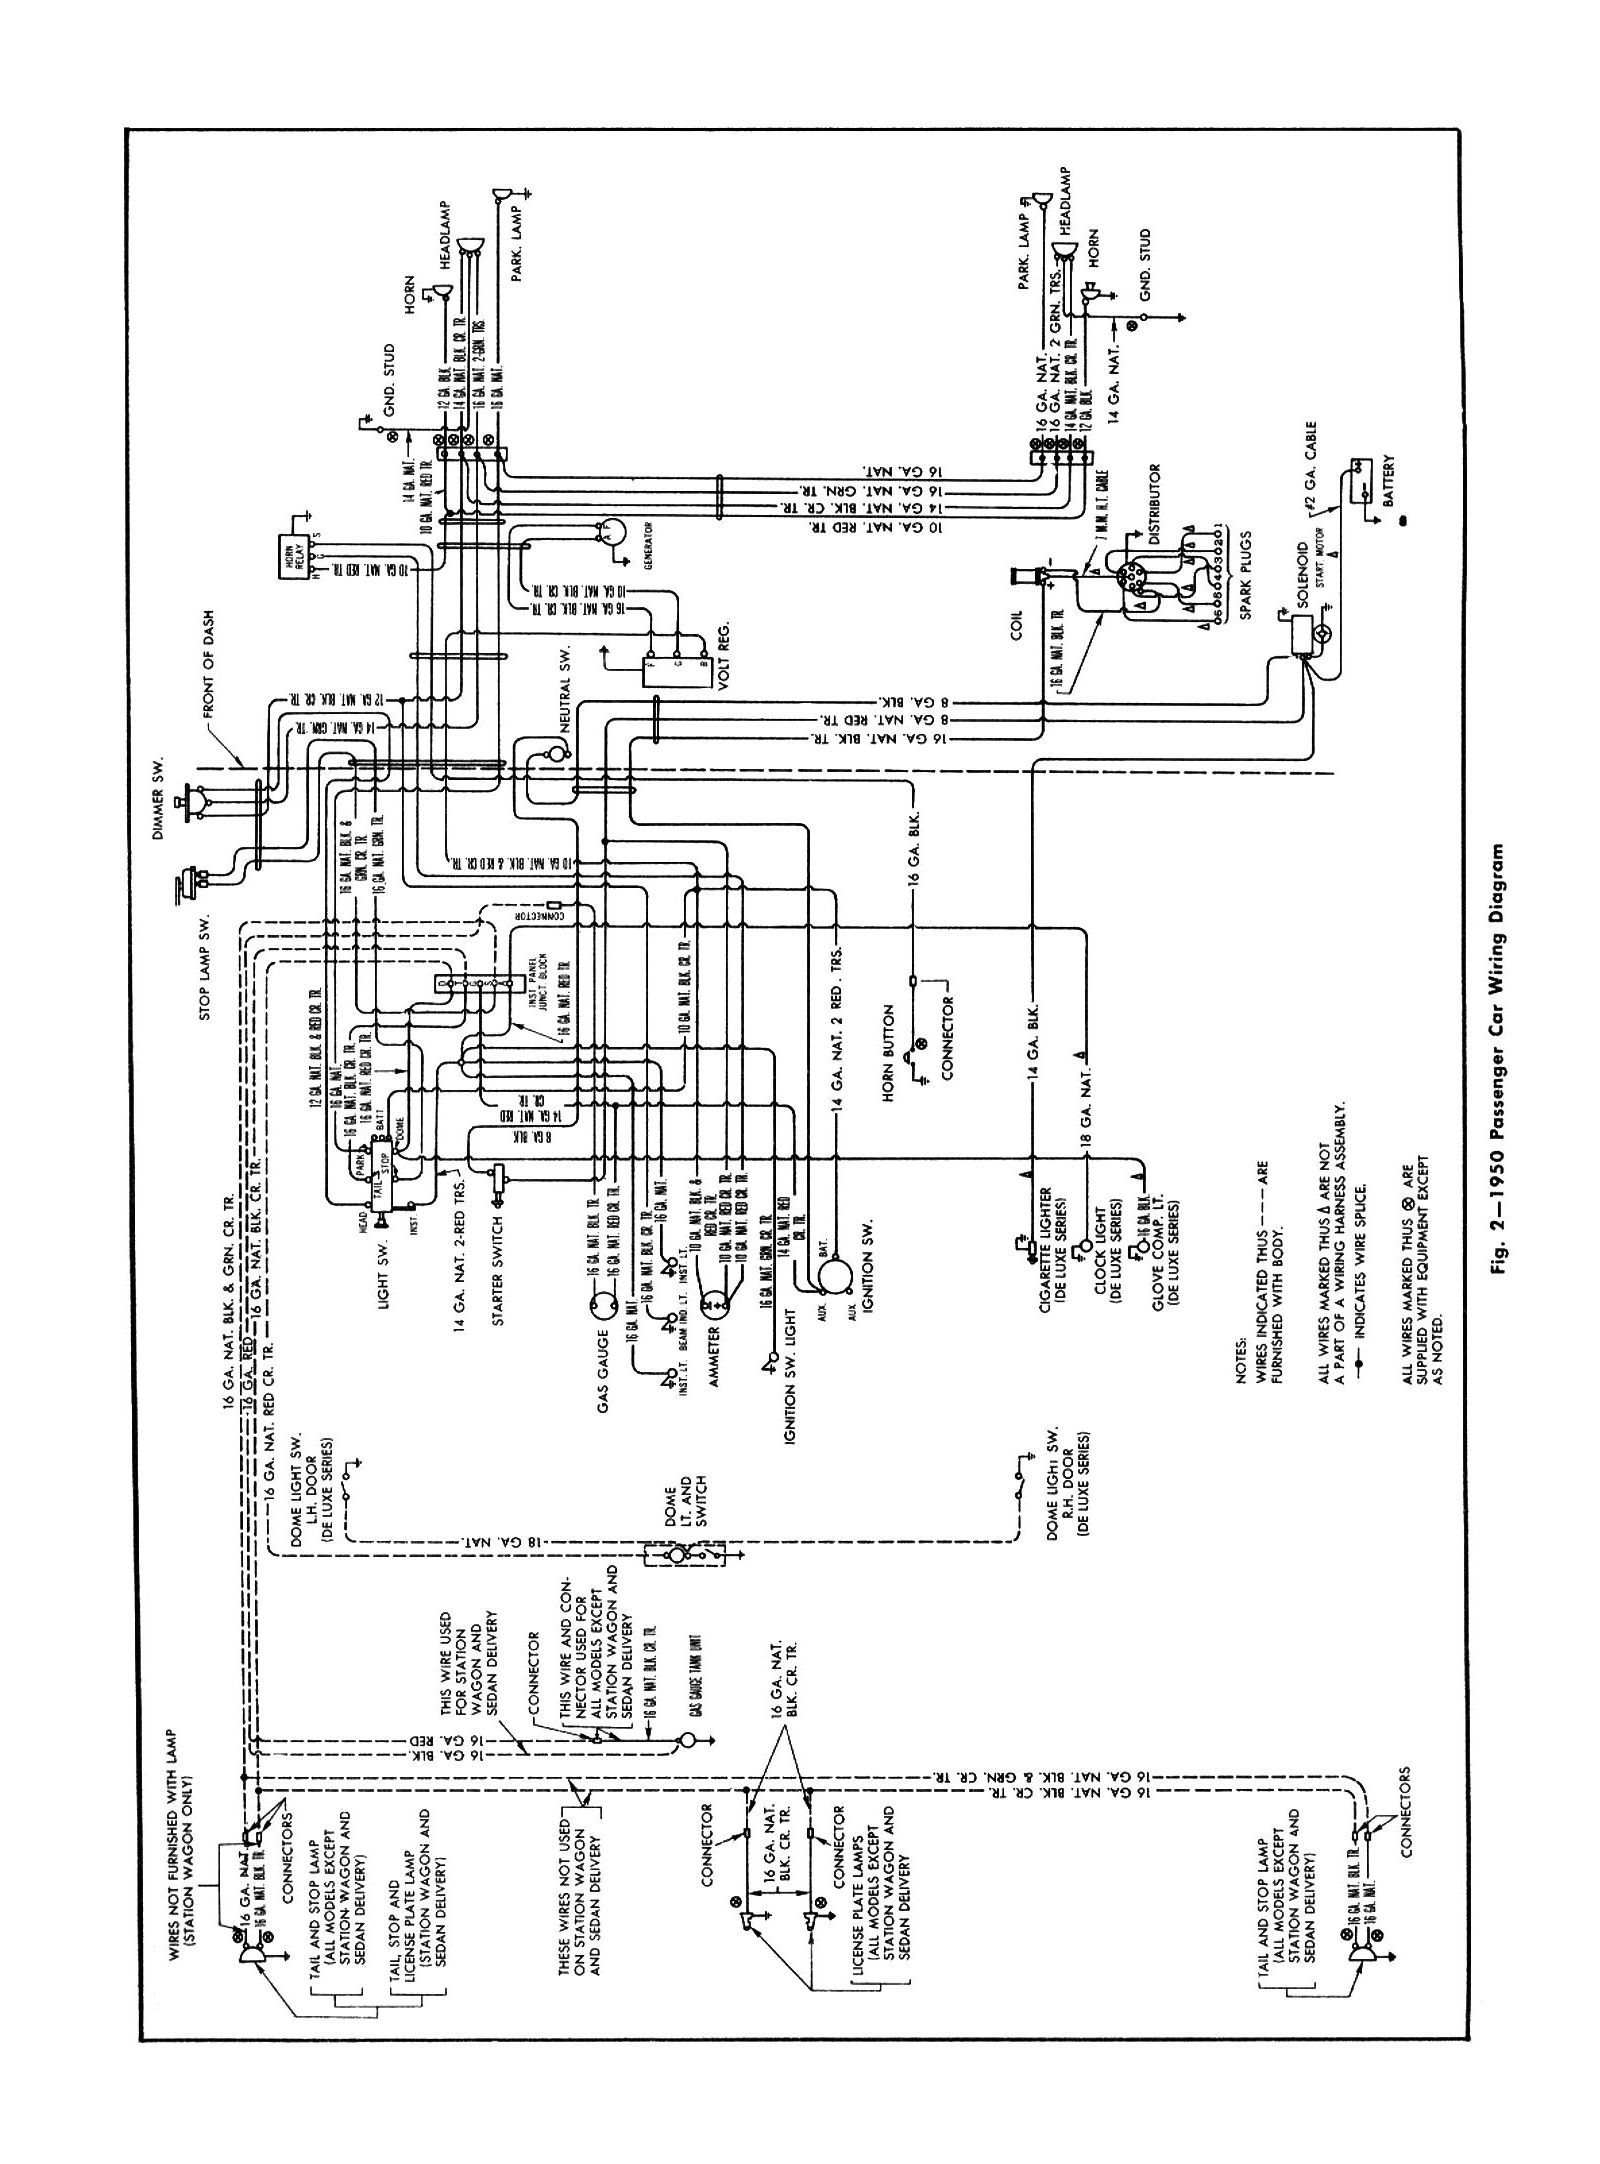 Ih Wiring Diagrams - List of Wiring Diagrams on